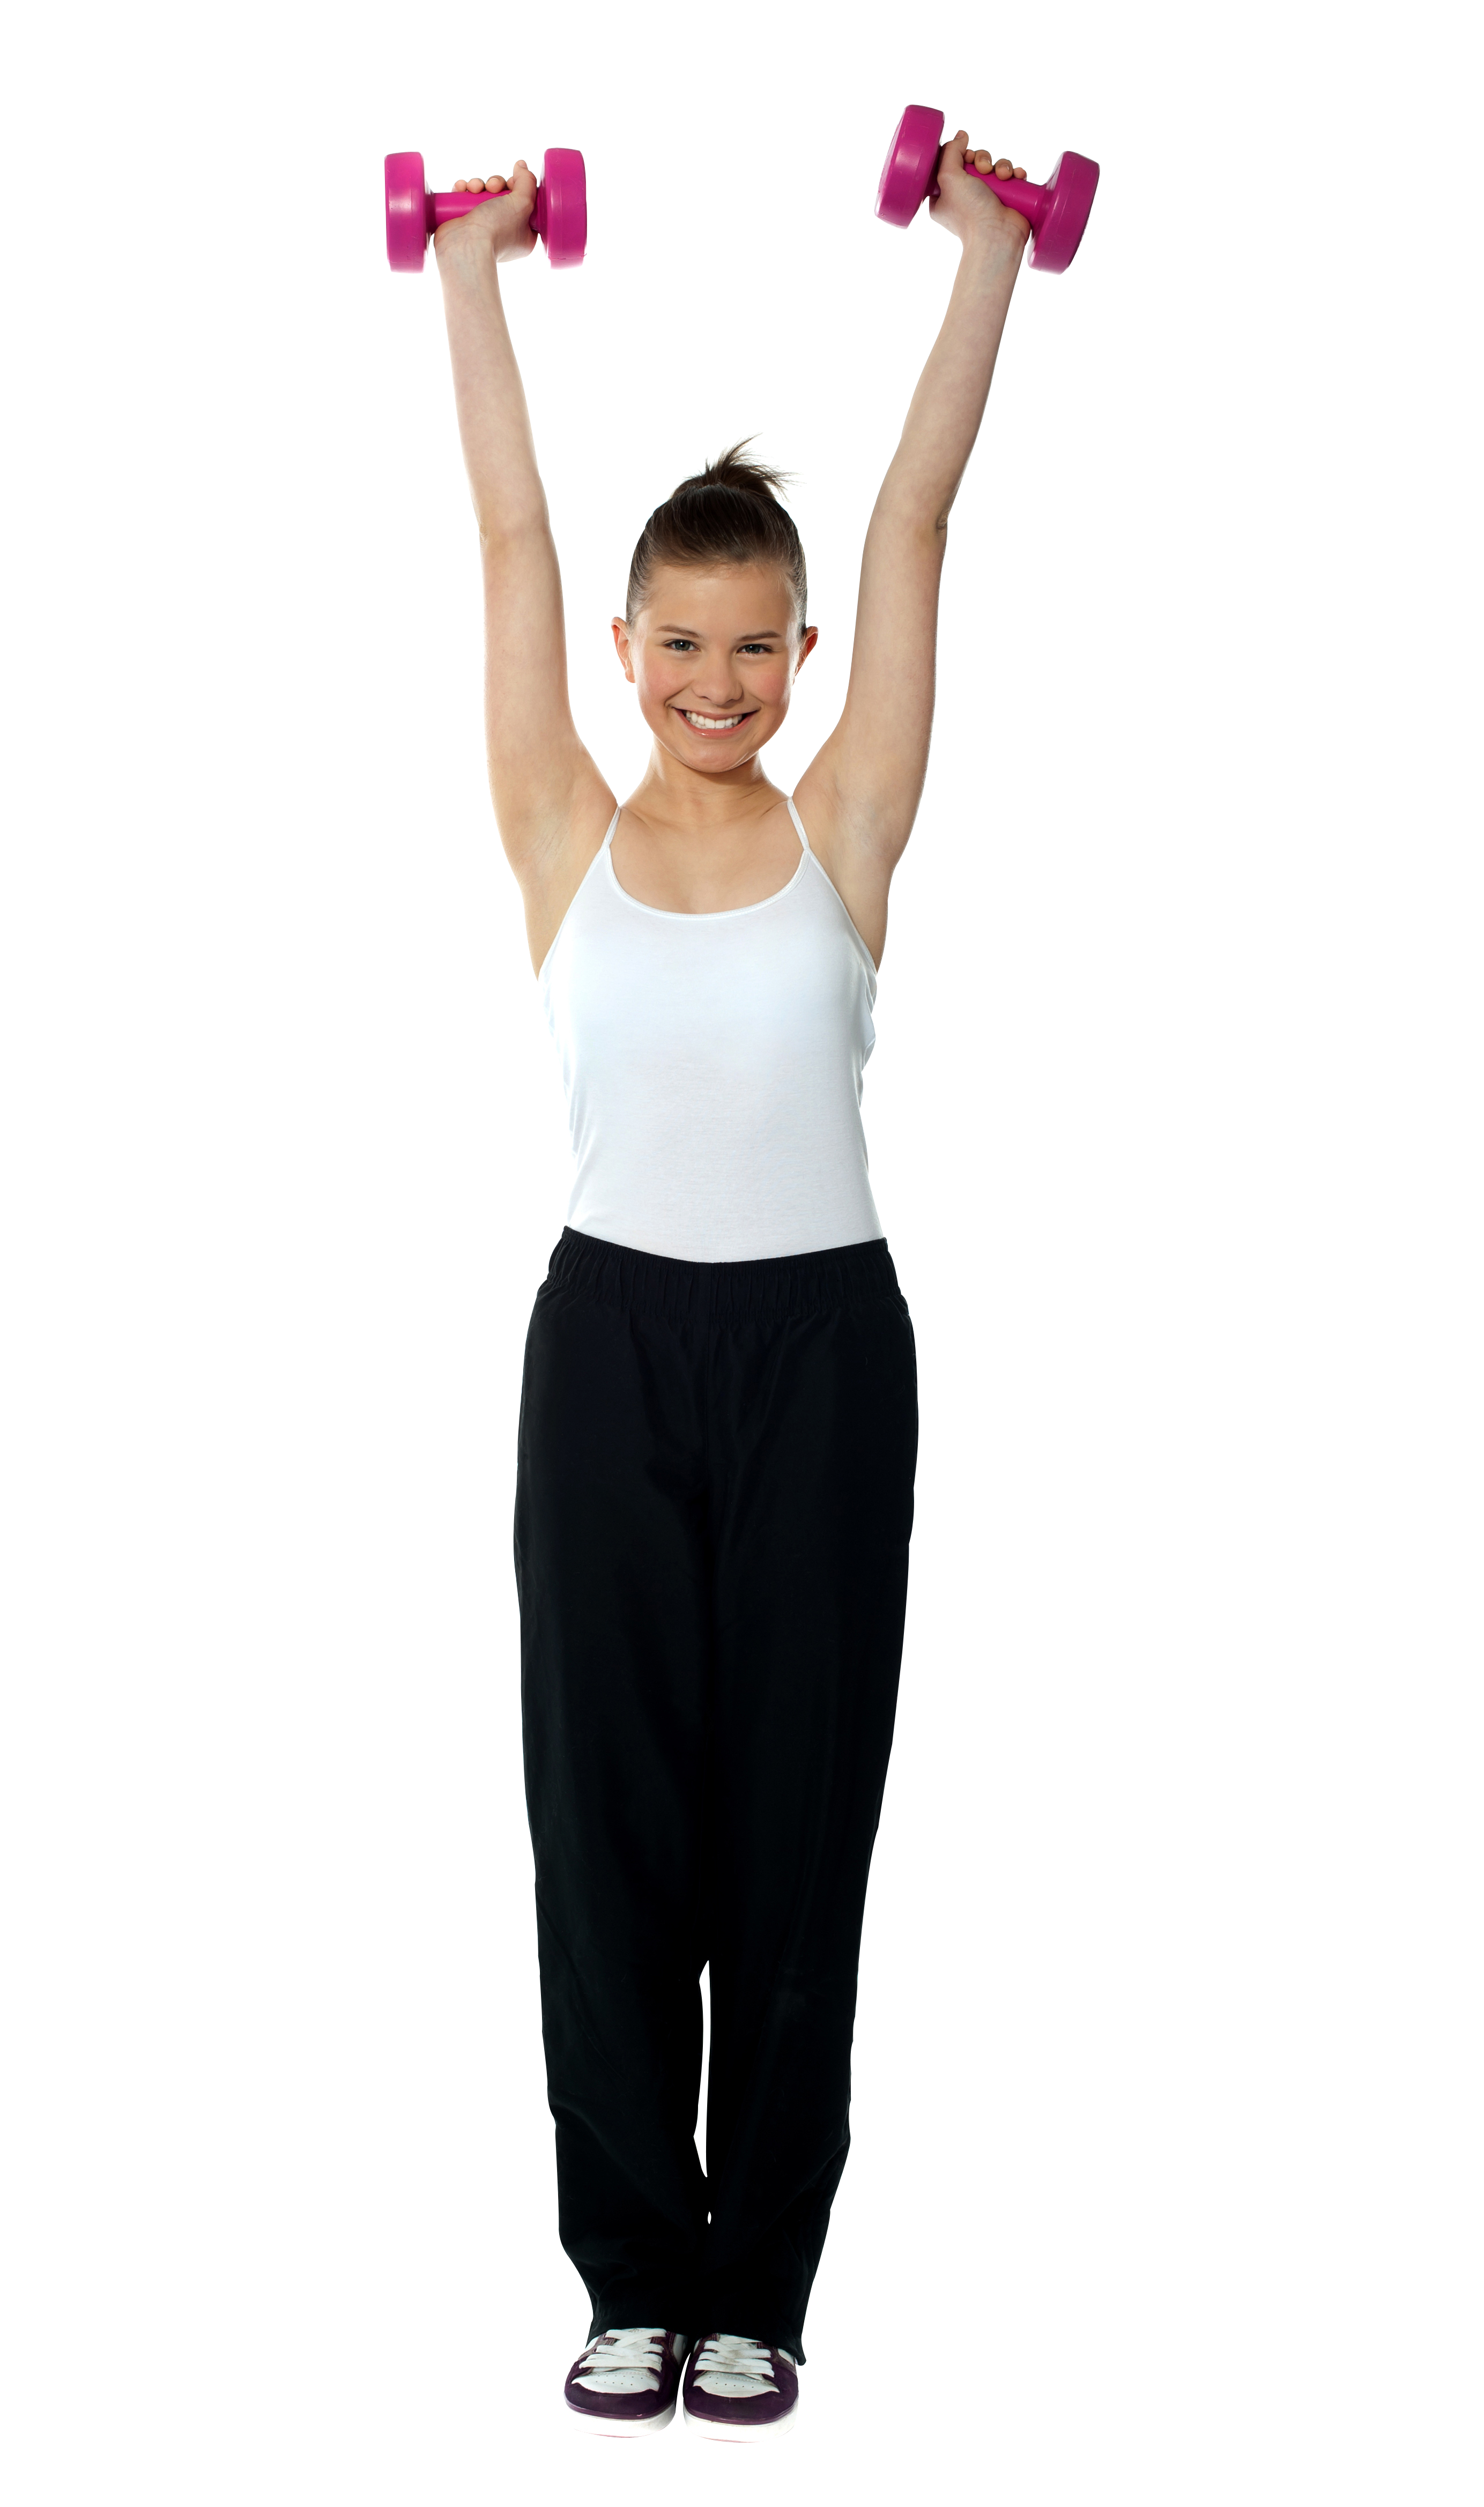 Women Exercising Png Image Fit Women Women People Png Young fit woman exercises with dumbbell png image. women exercising png image fit women